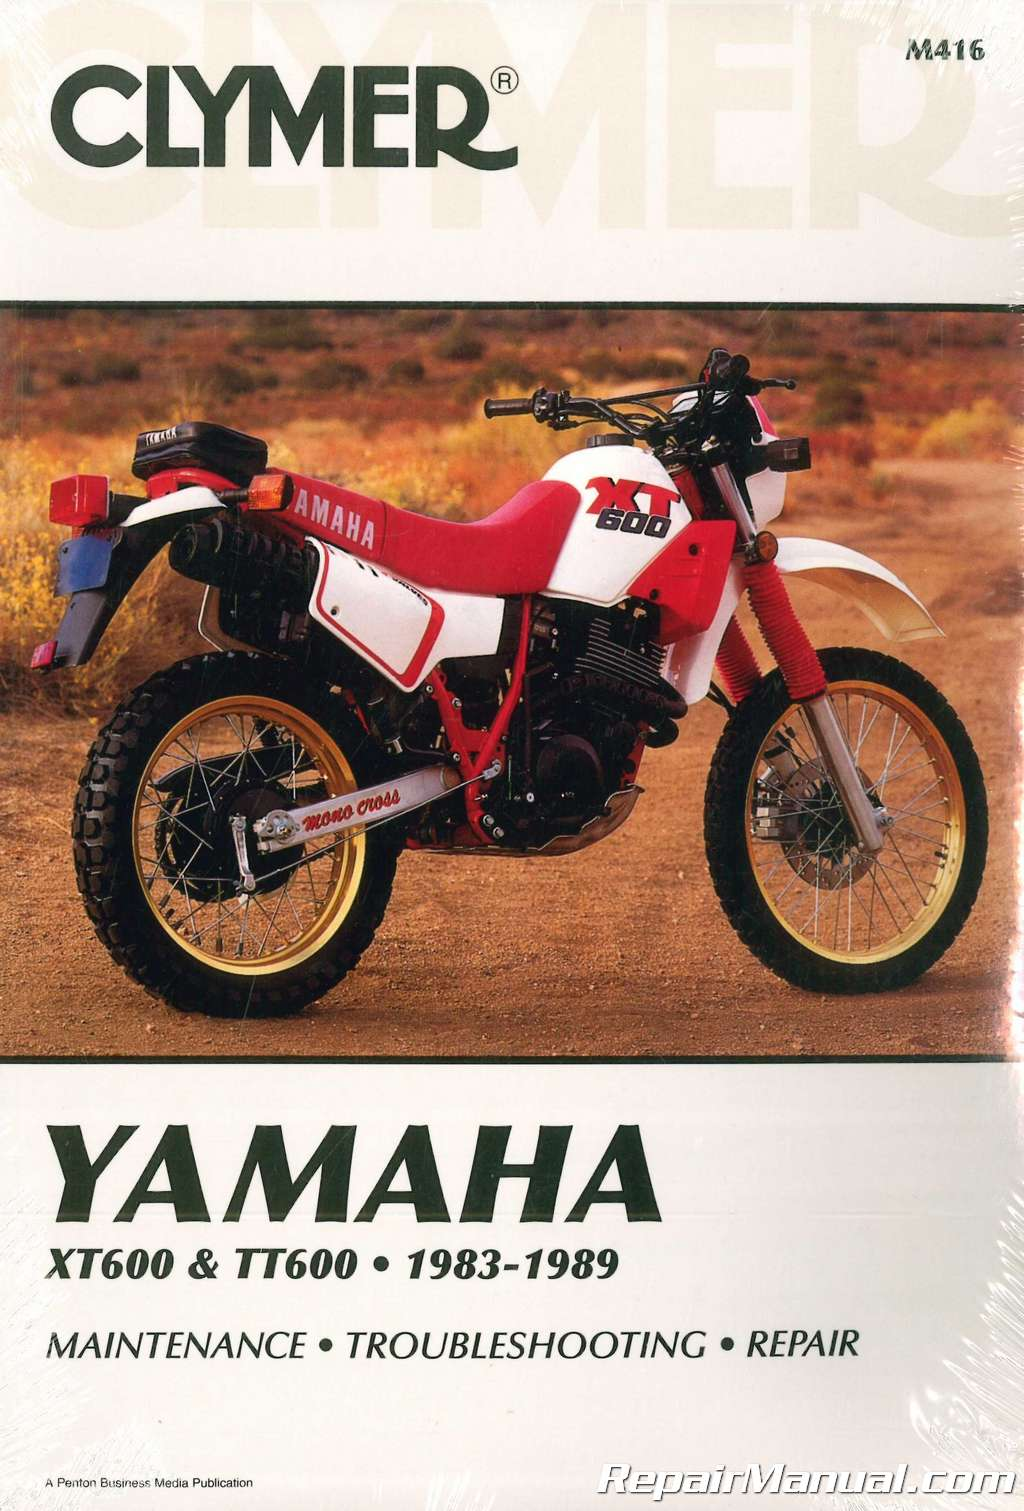 1983 1989 Yamaha Xt600 Tt600 Clymer Motorcycle Repair Manual 1981 Tt500 Ignition Wiring